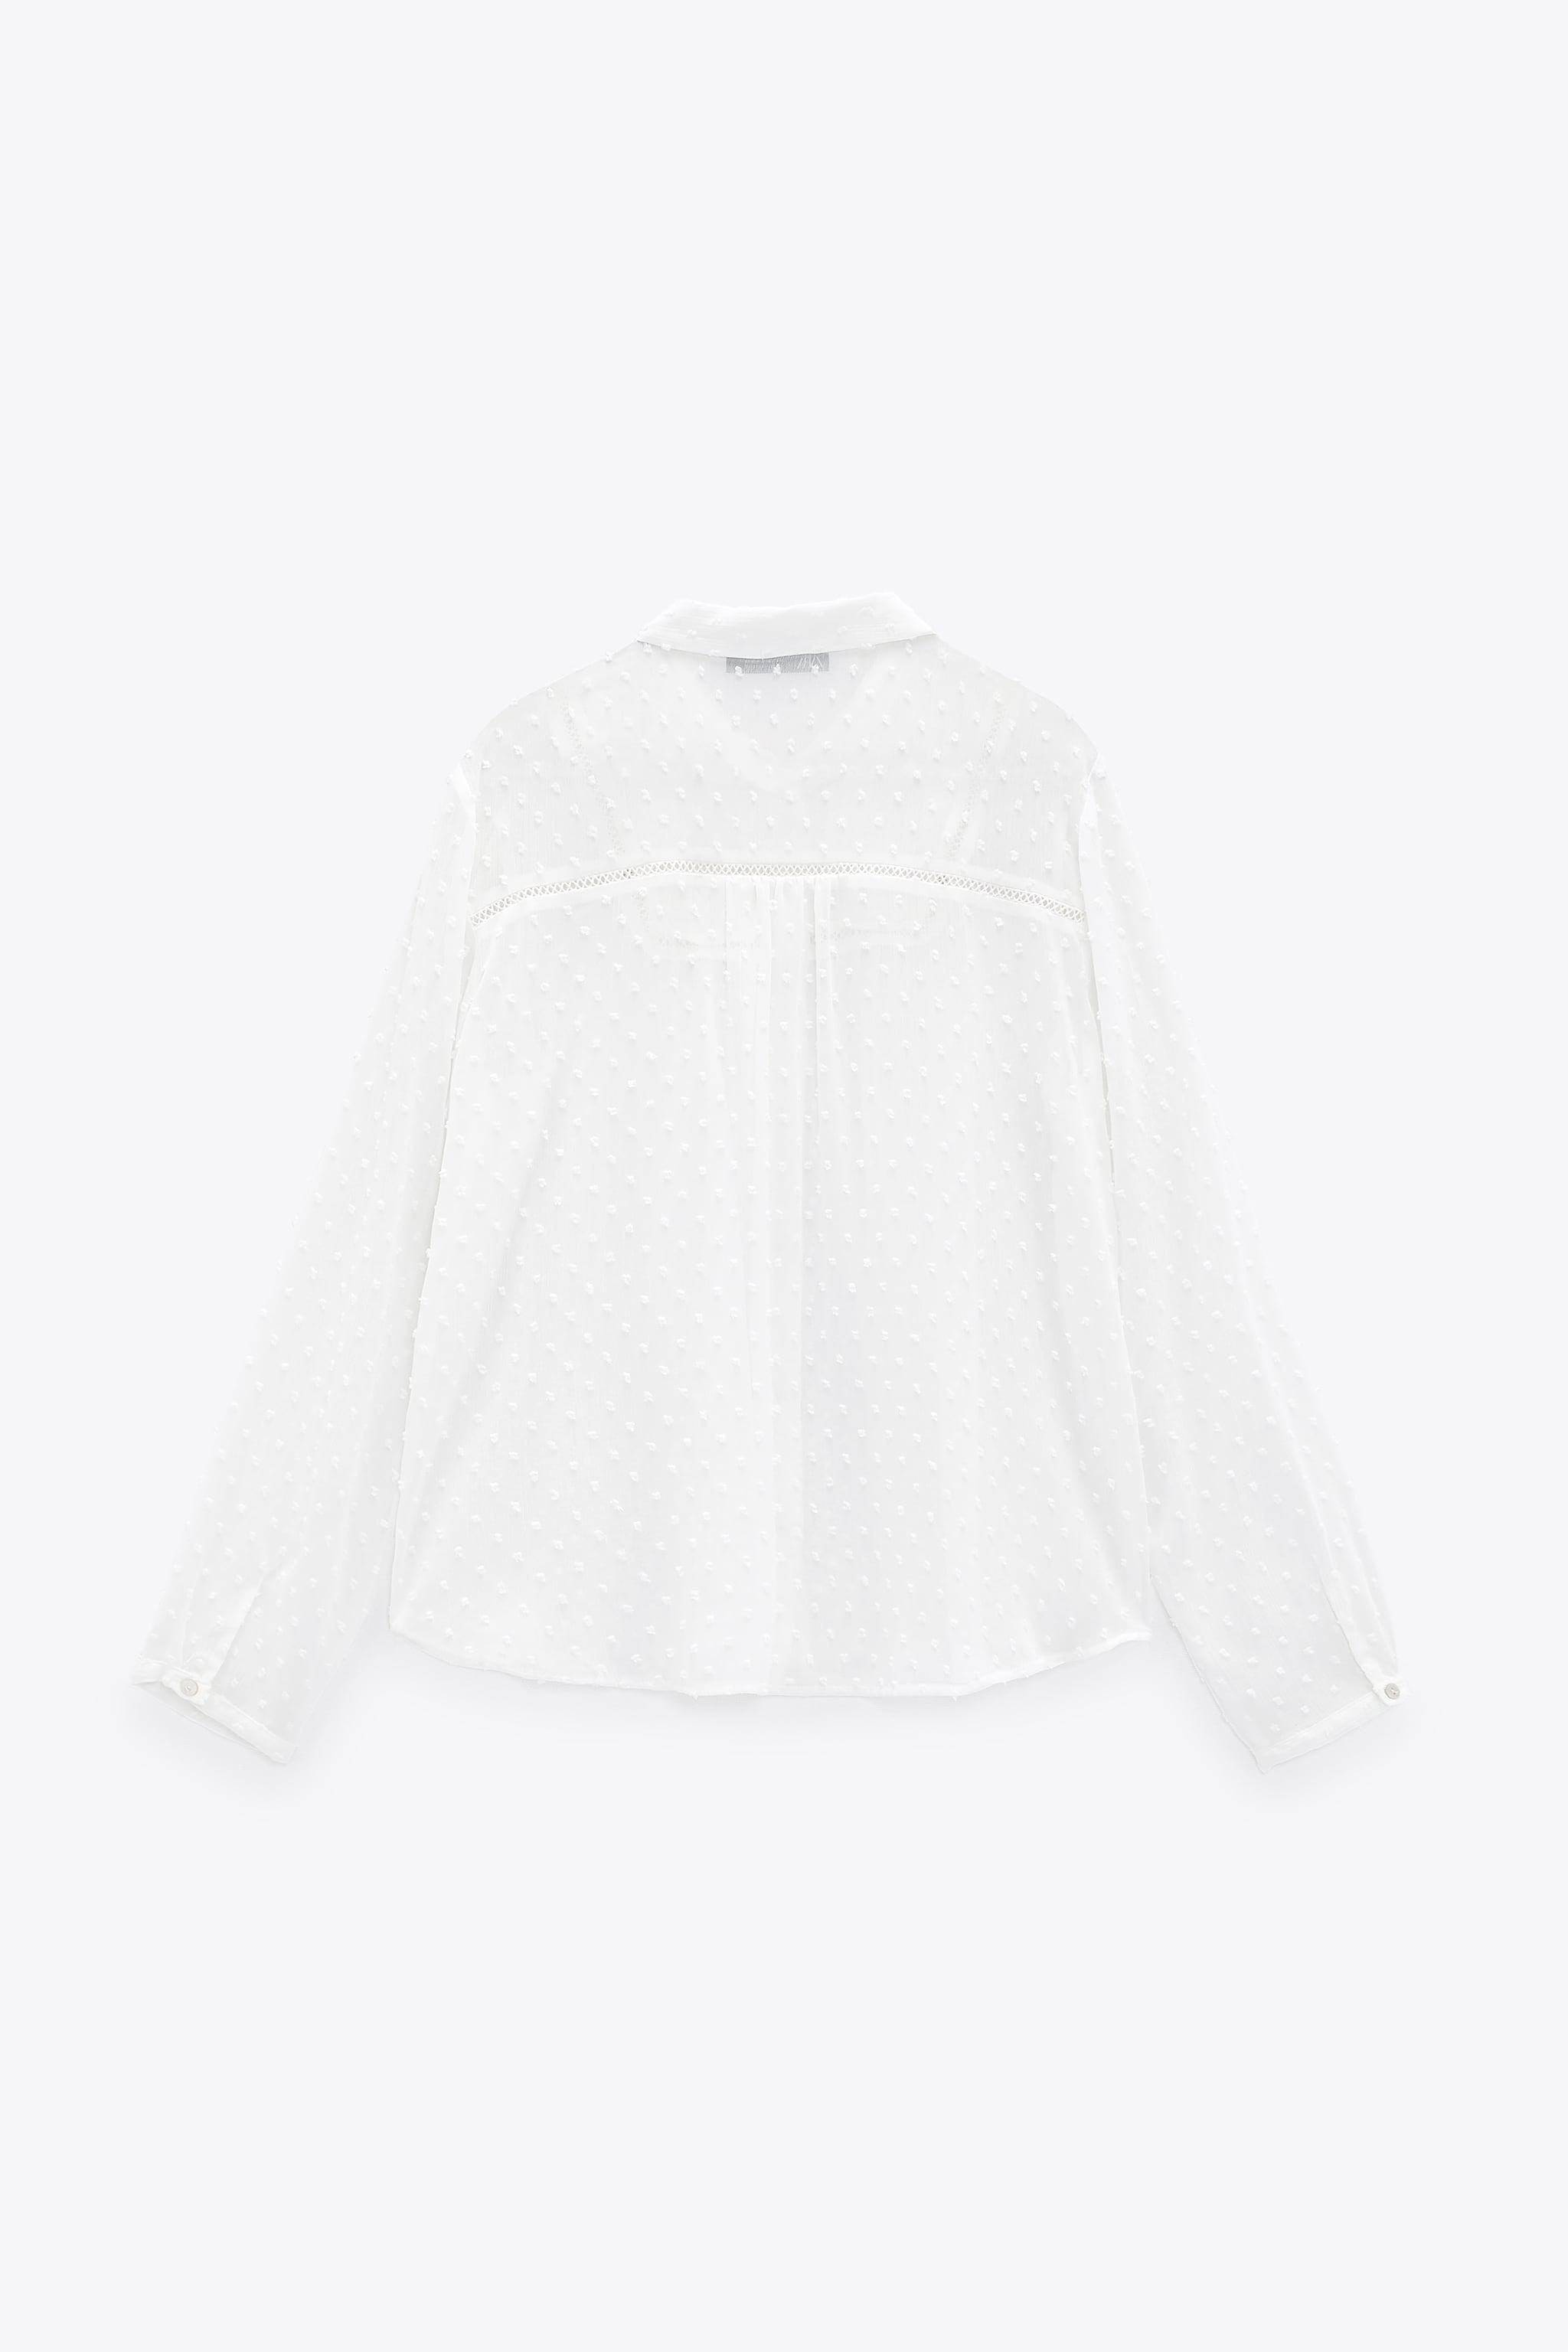 DOTTED MESH LACE INSERT SHIRT 5